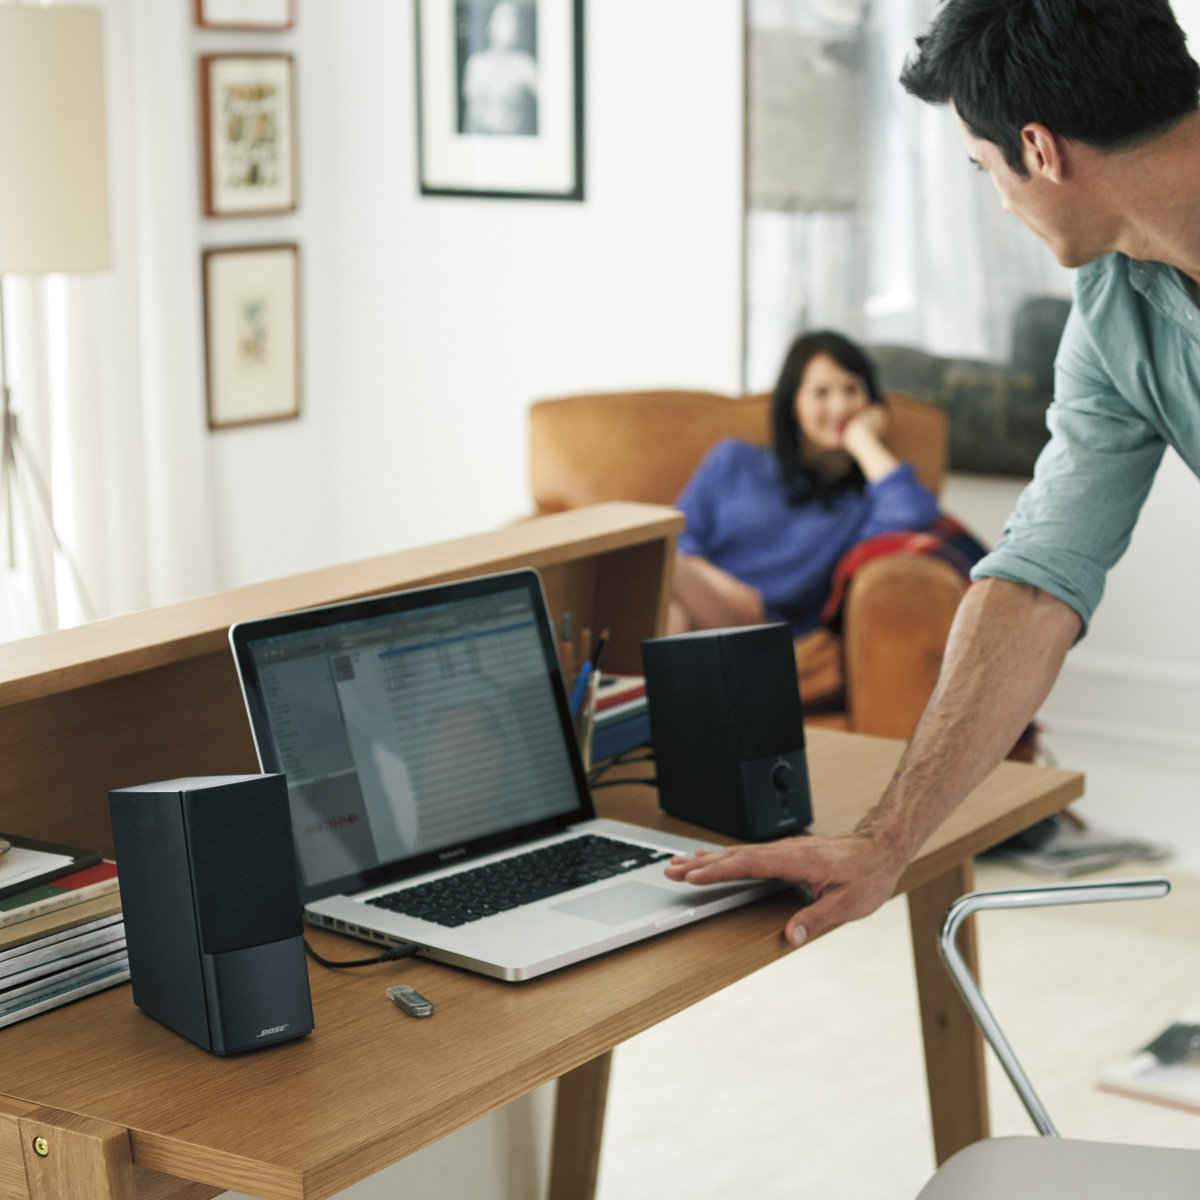 Bose Companion 2 Series III Multimedia Speakers - for PC (with 3.5mm AUX & PC input) by Bose (Image #7)